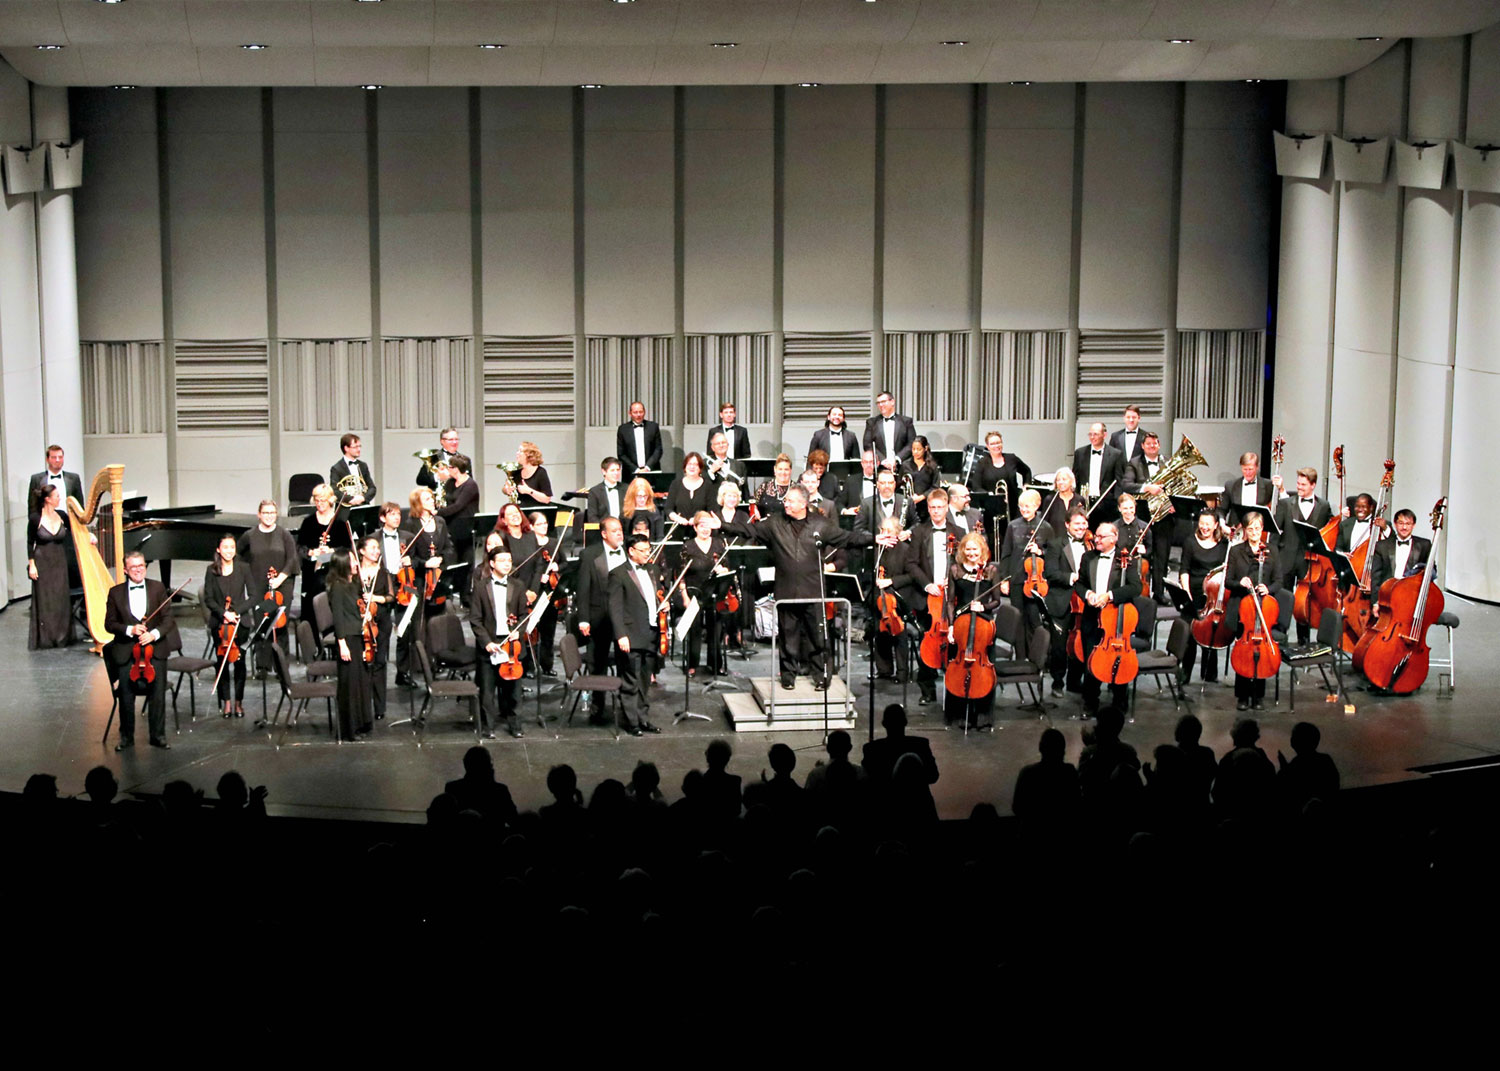 Punta Gorda Arts & Culture - Orchestra